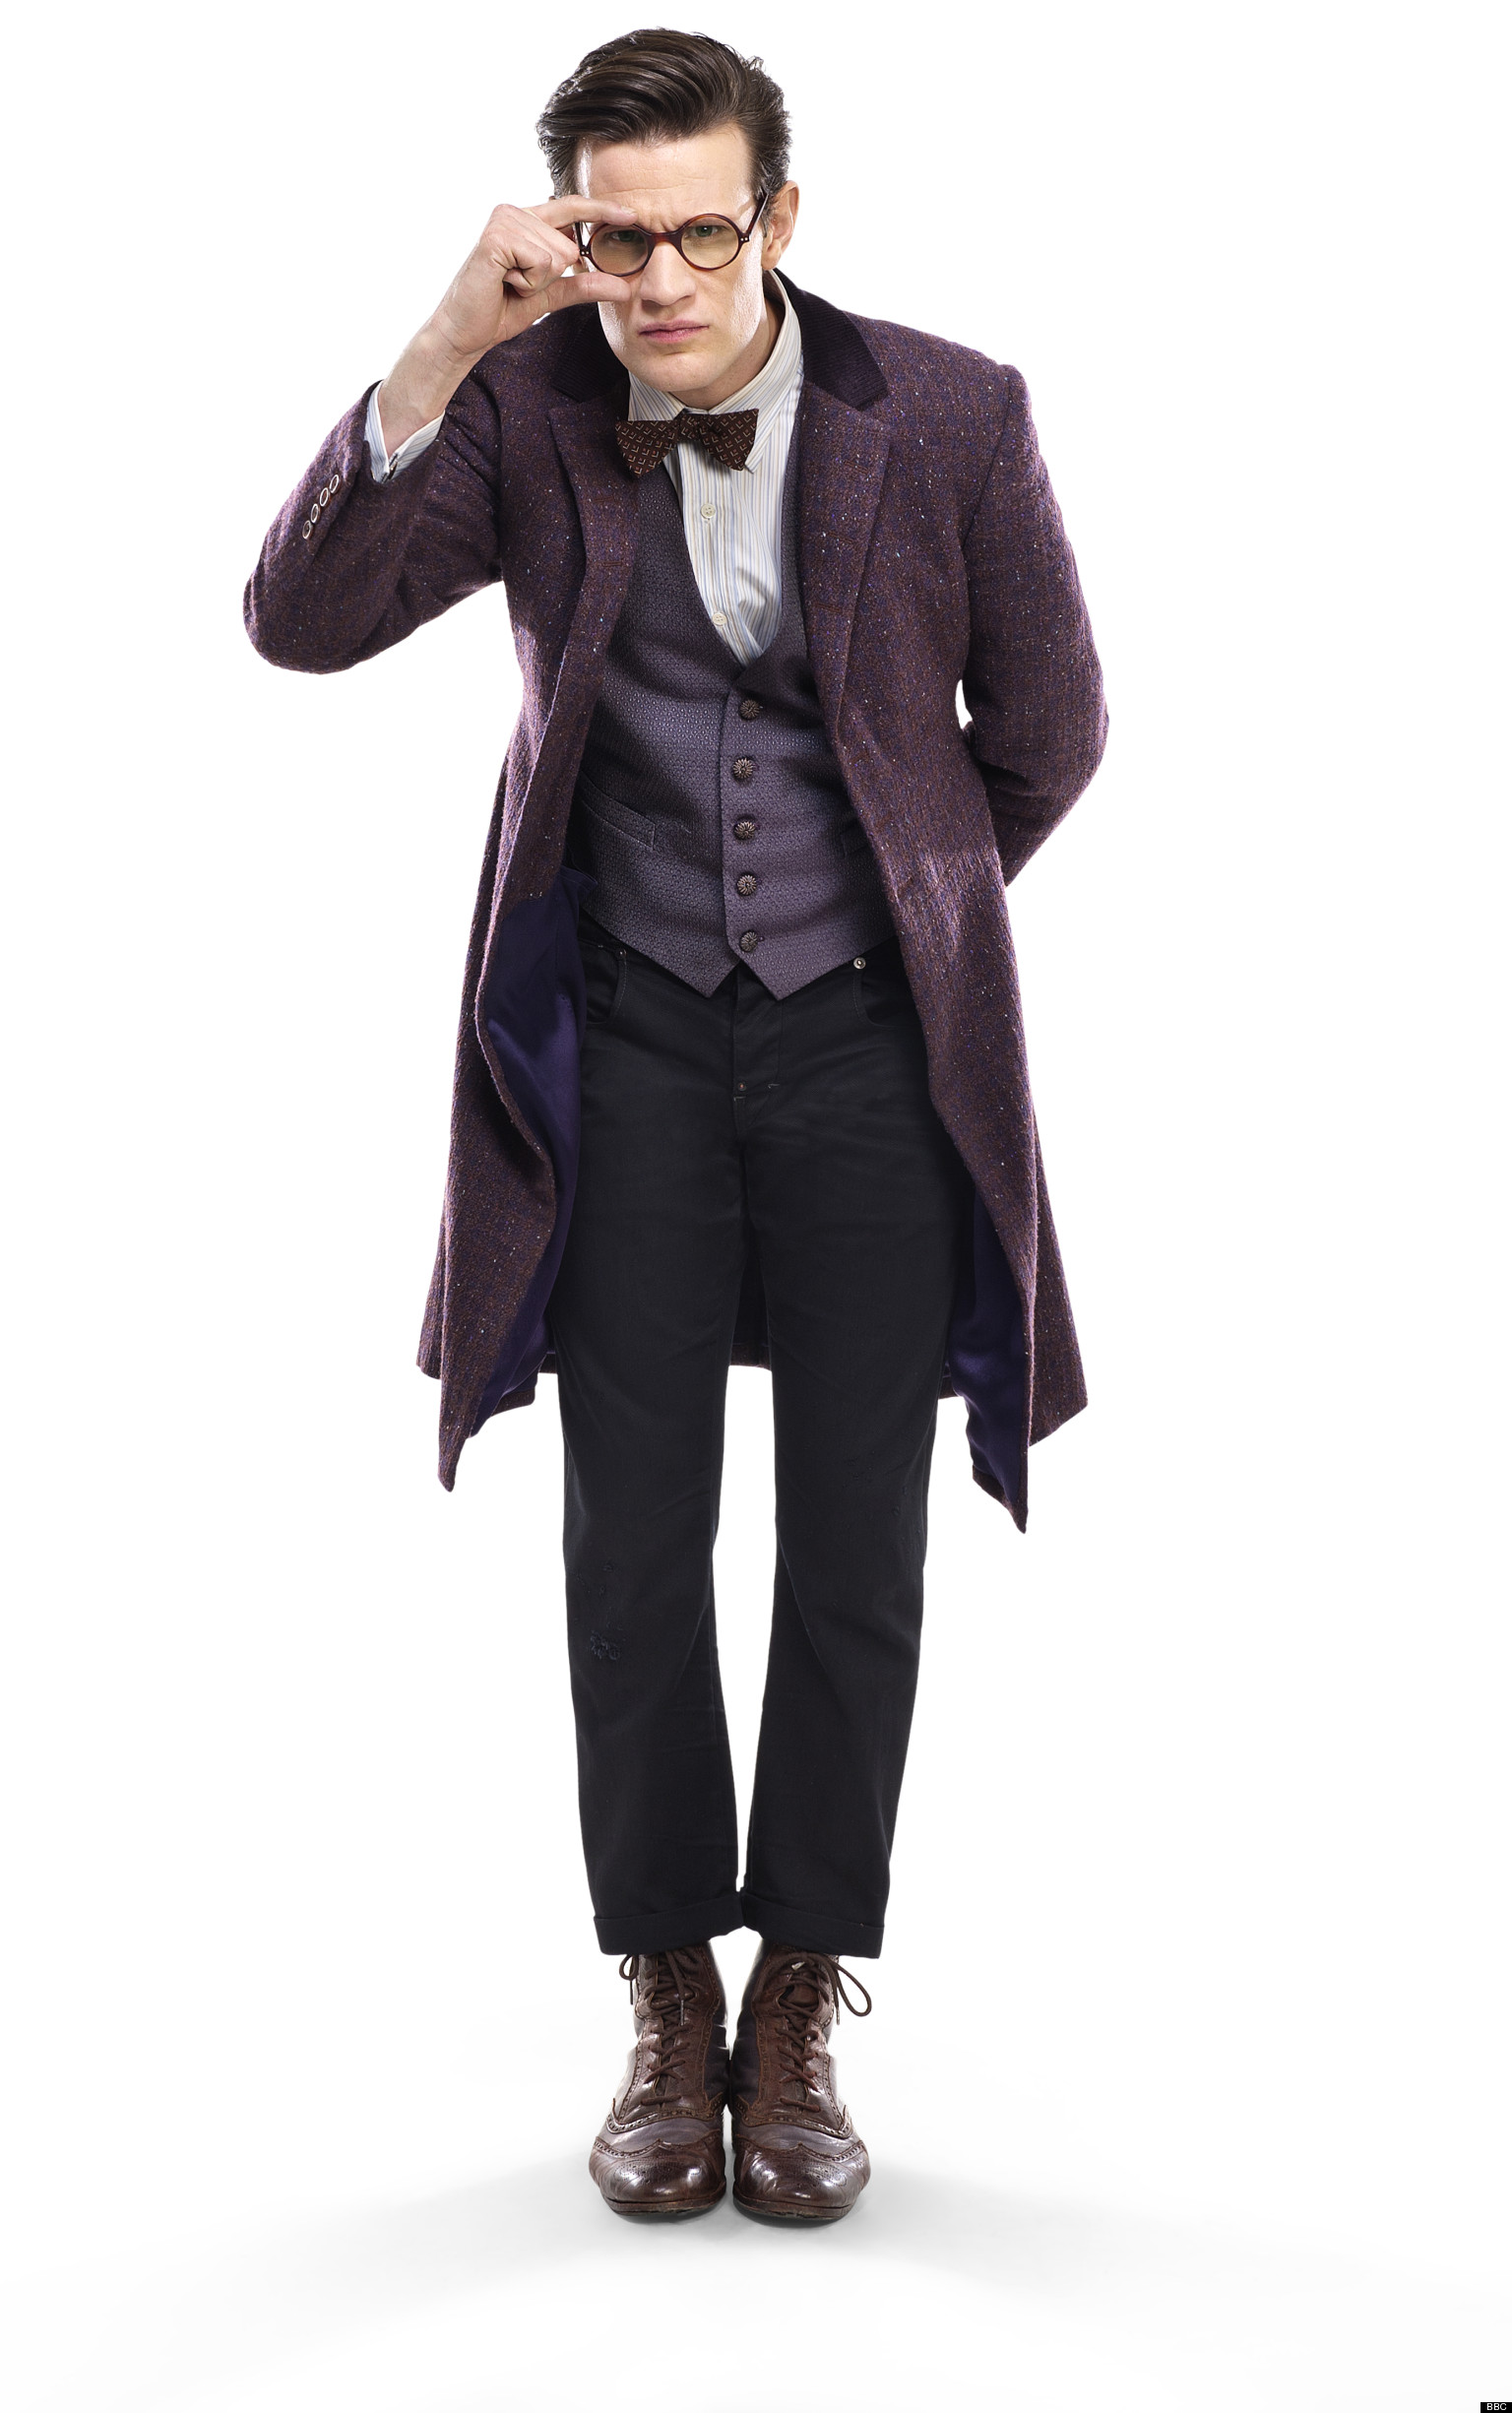 Bow Ties are cool - Matt Smith - Doctor Who